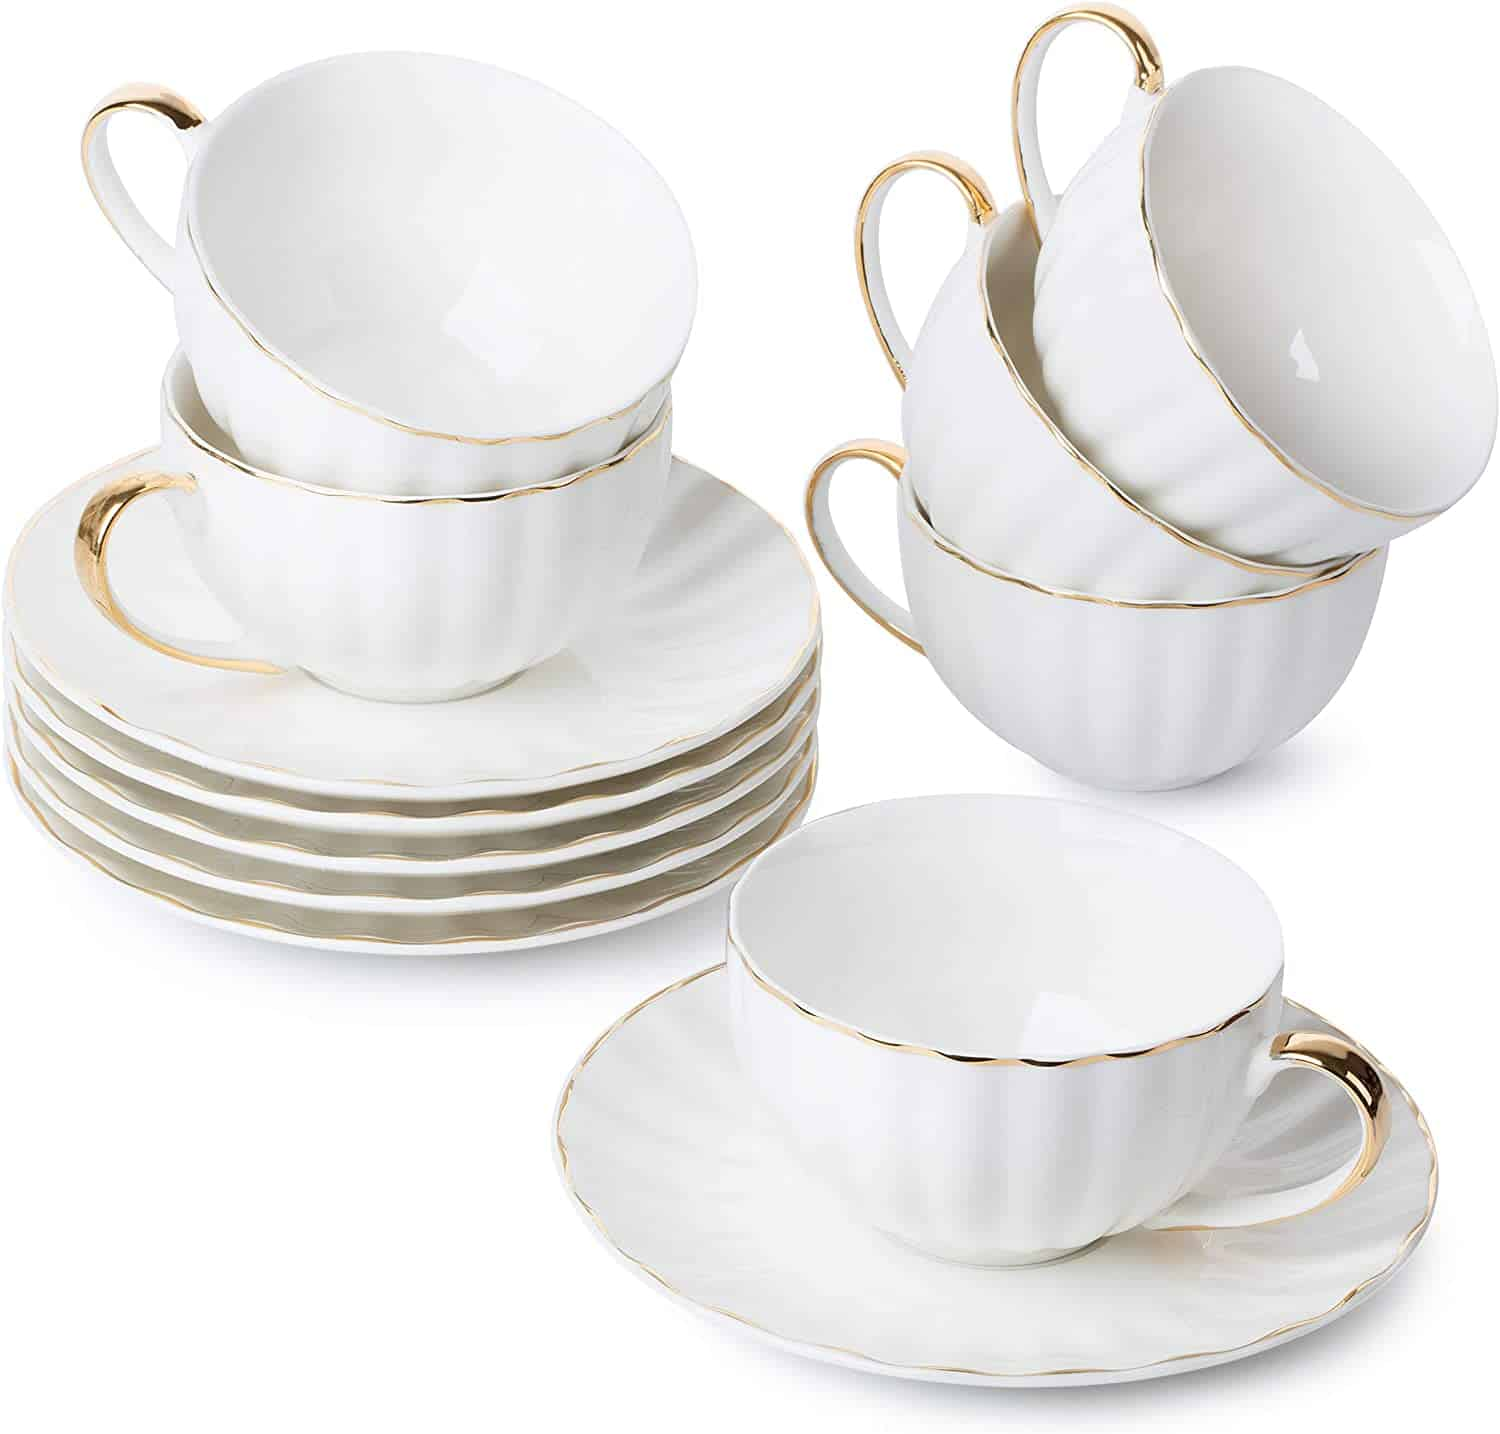 Brew To A Tea Set Of 6 Tea Cups With Saucers Best For Family